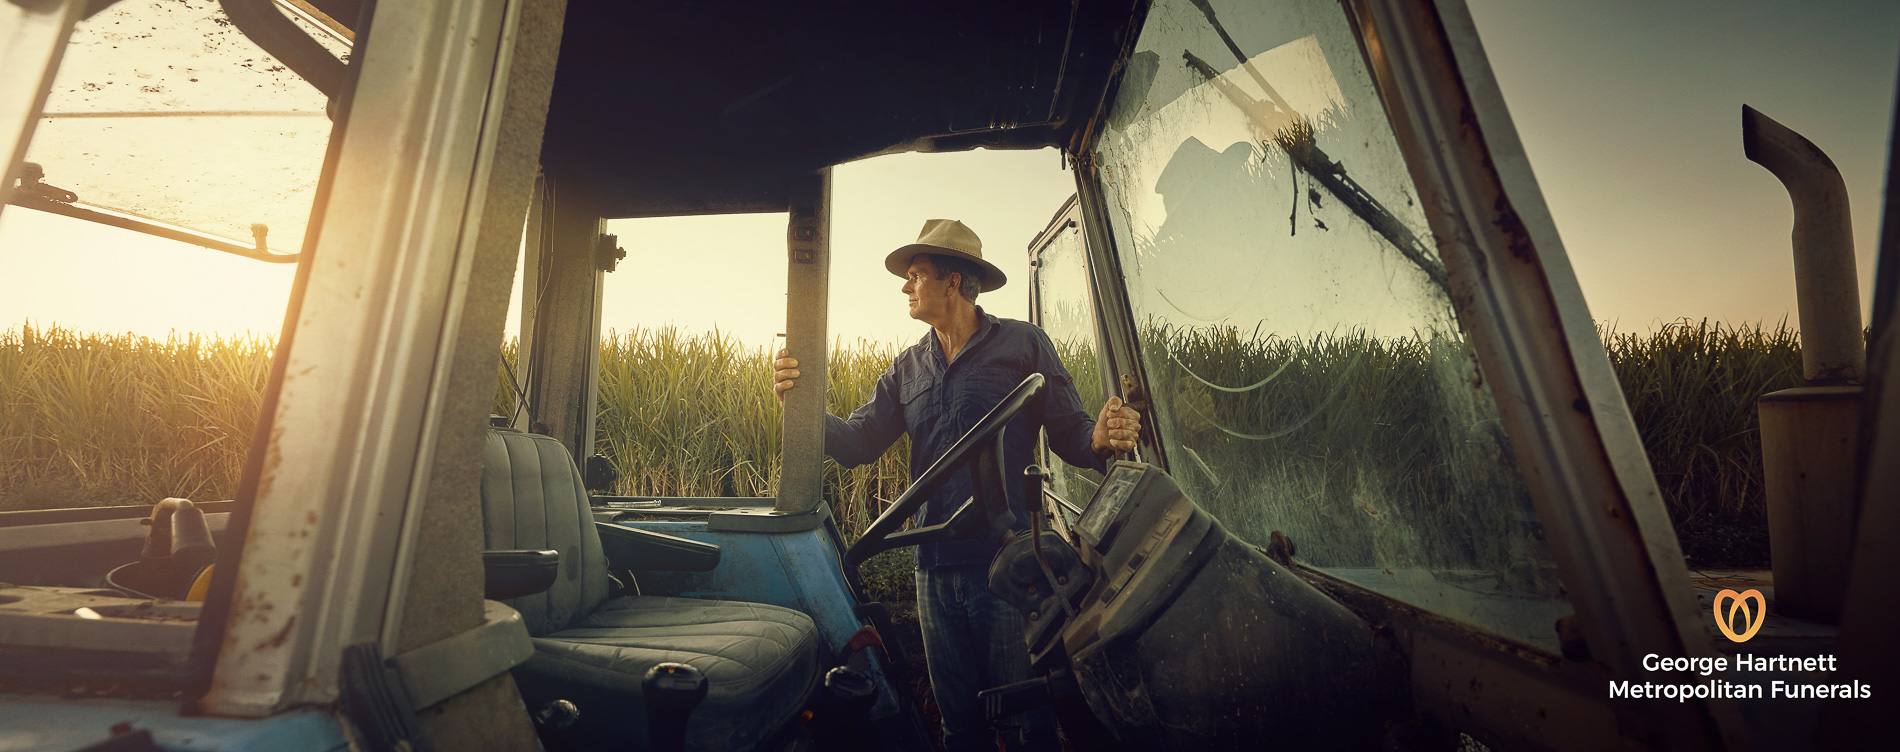 A picture of a farmer watching the sunrise during a advertising photoshoot